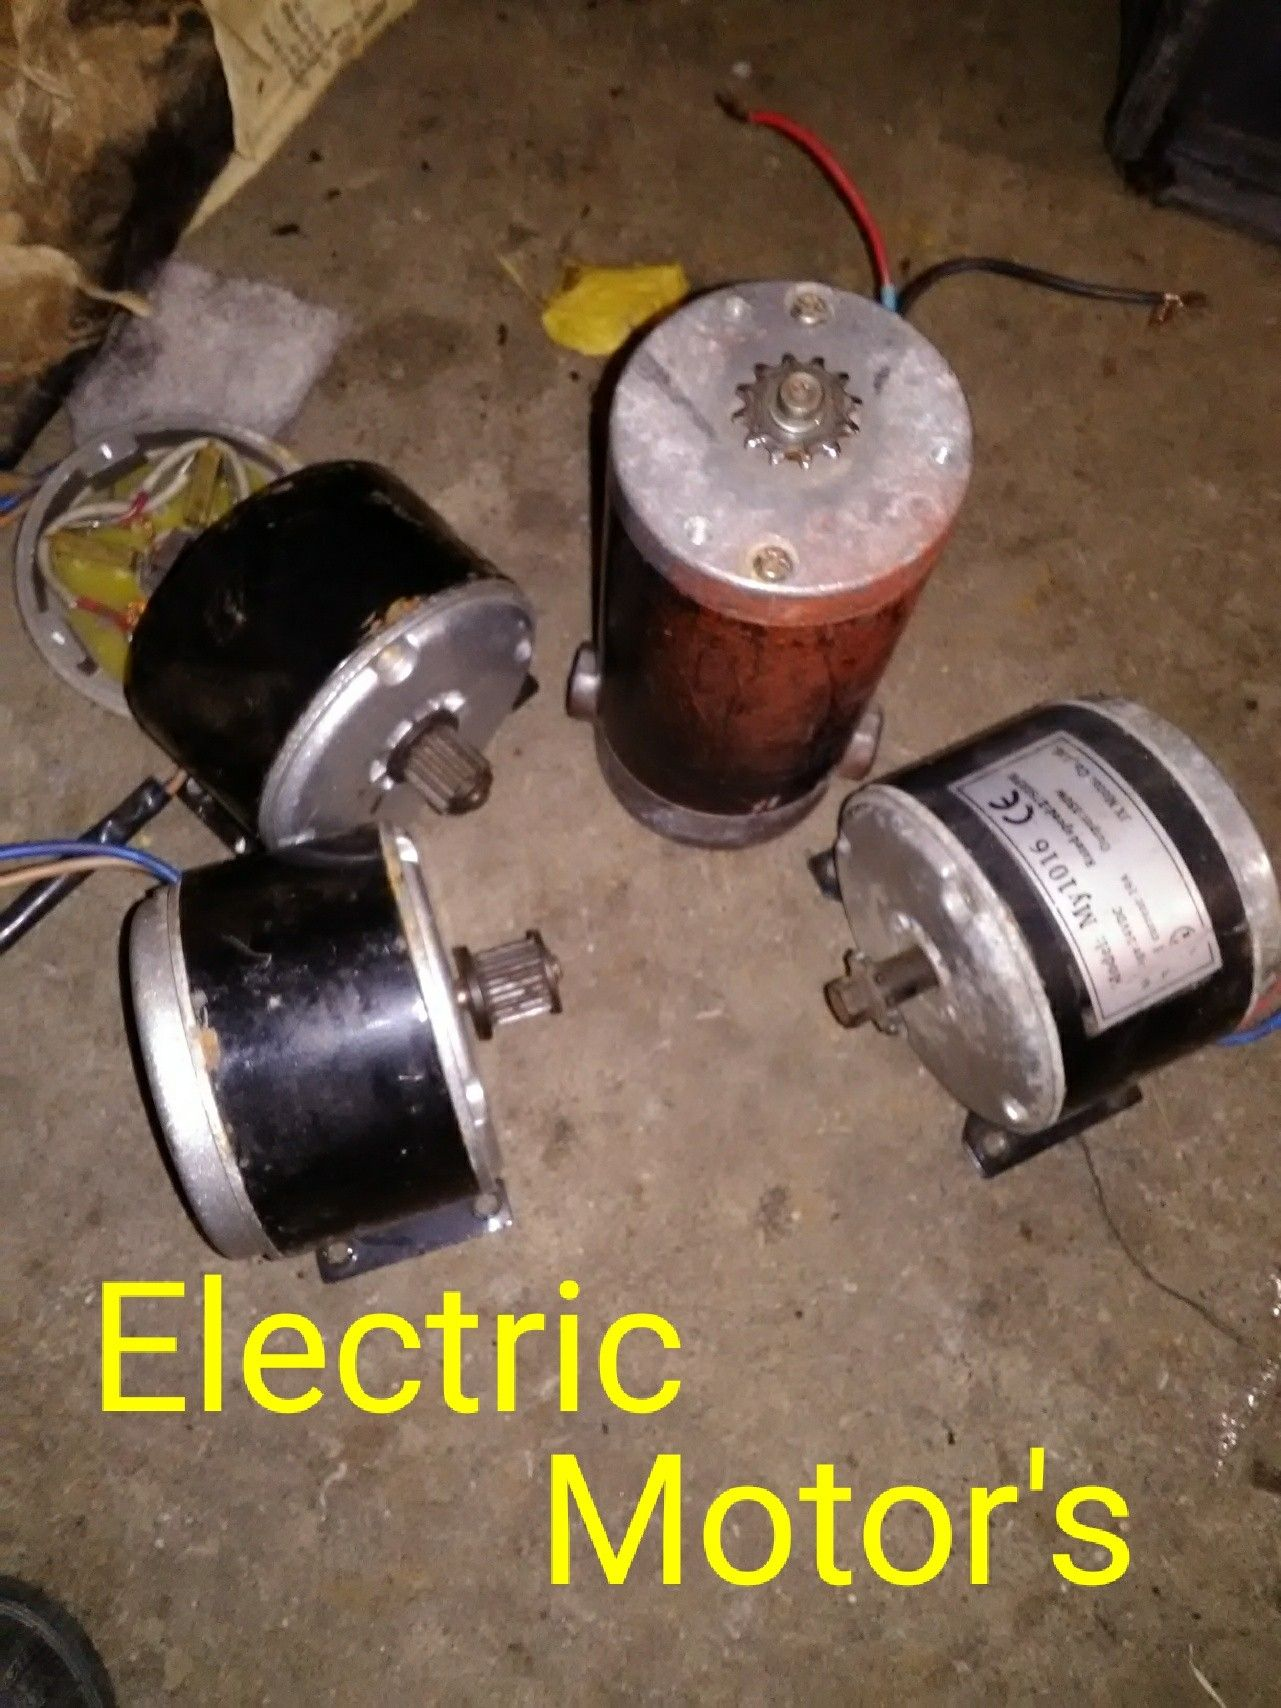 Electric motor's for scooter's and bicycle's